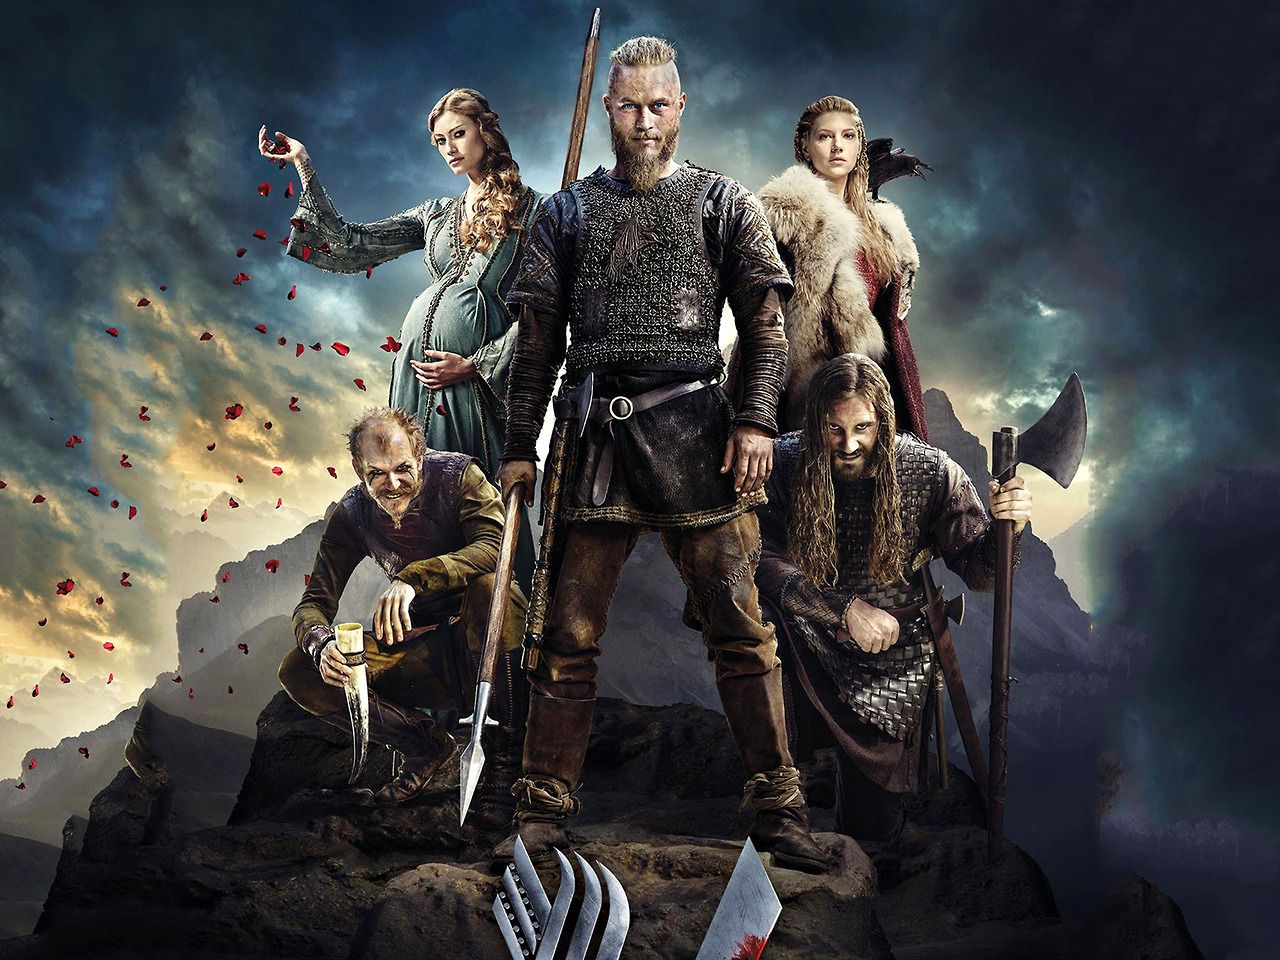 Vikings iphone wallpaper tumblr - Hd Wallpaper And Background Photos Of Season 2 Wallpaper For Fans Of Vikings Tv Series Images